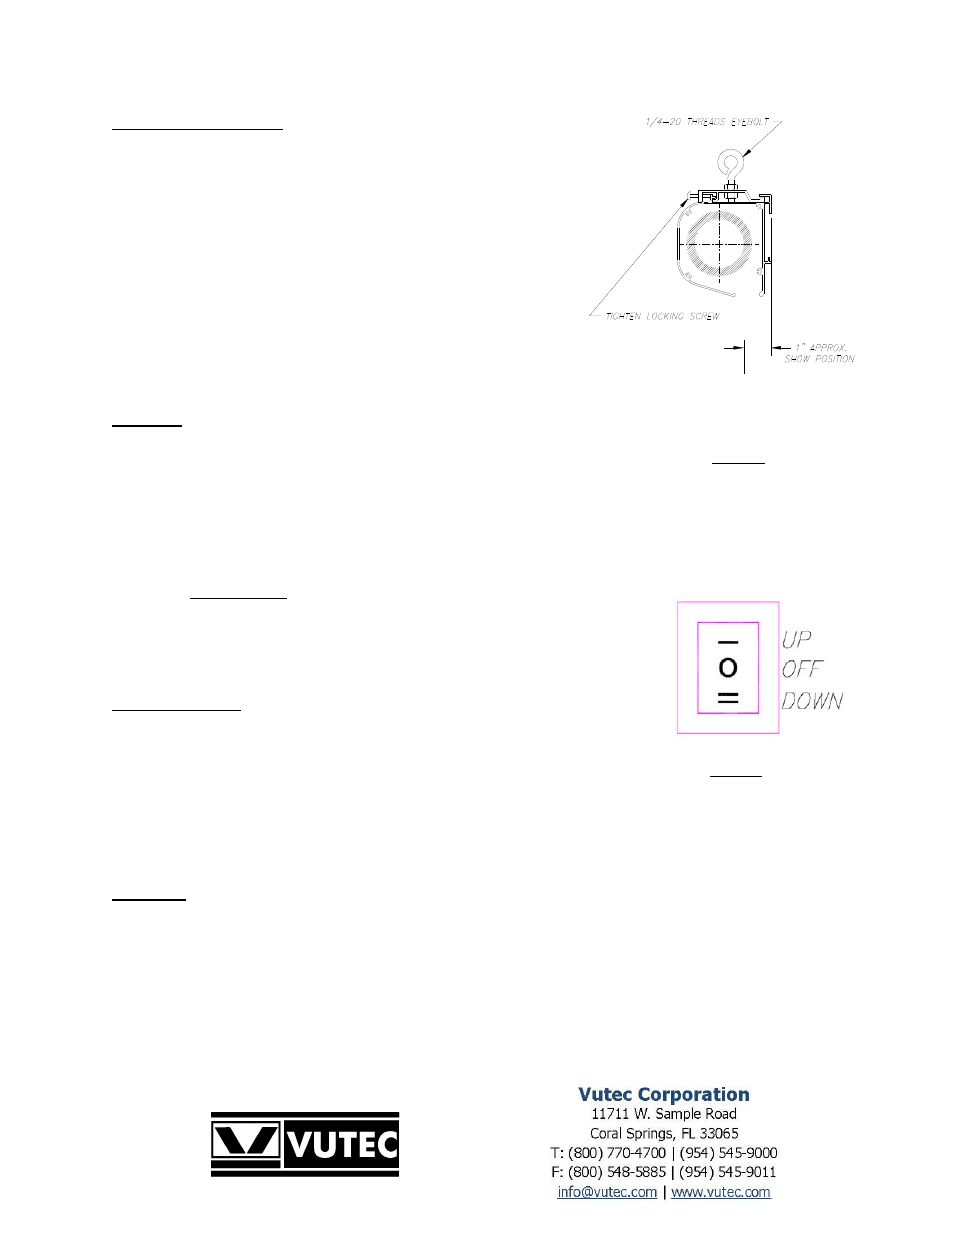 Vutec Elegante Motorized Installation Instructions User Manual Thread Switch To Outlet Wiring Page 4 5